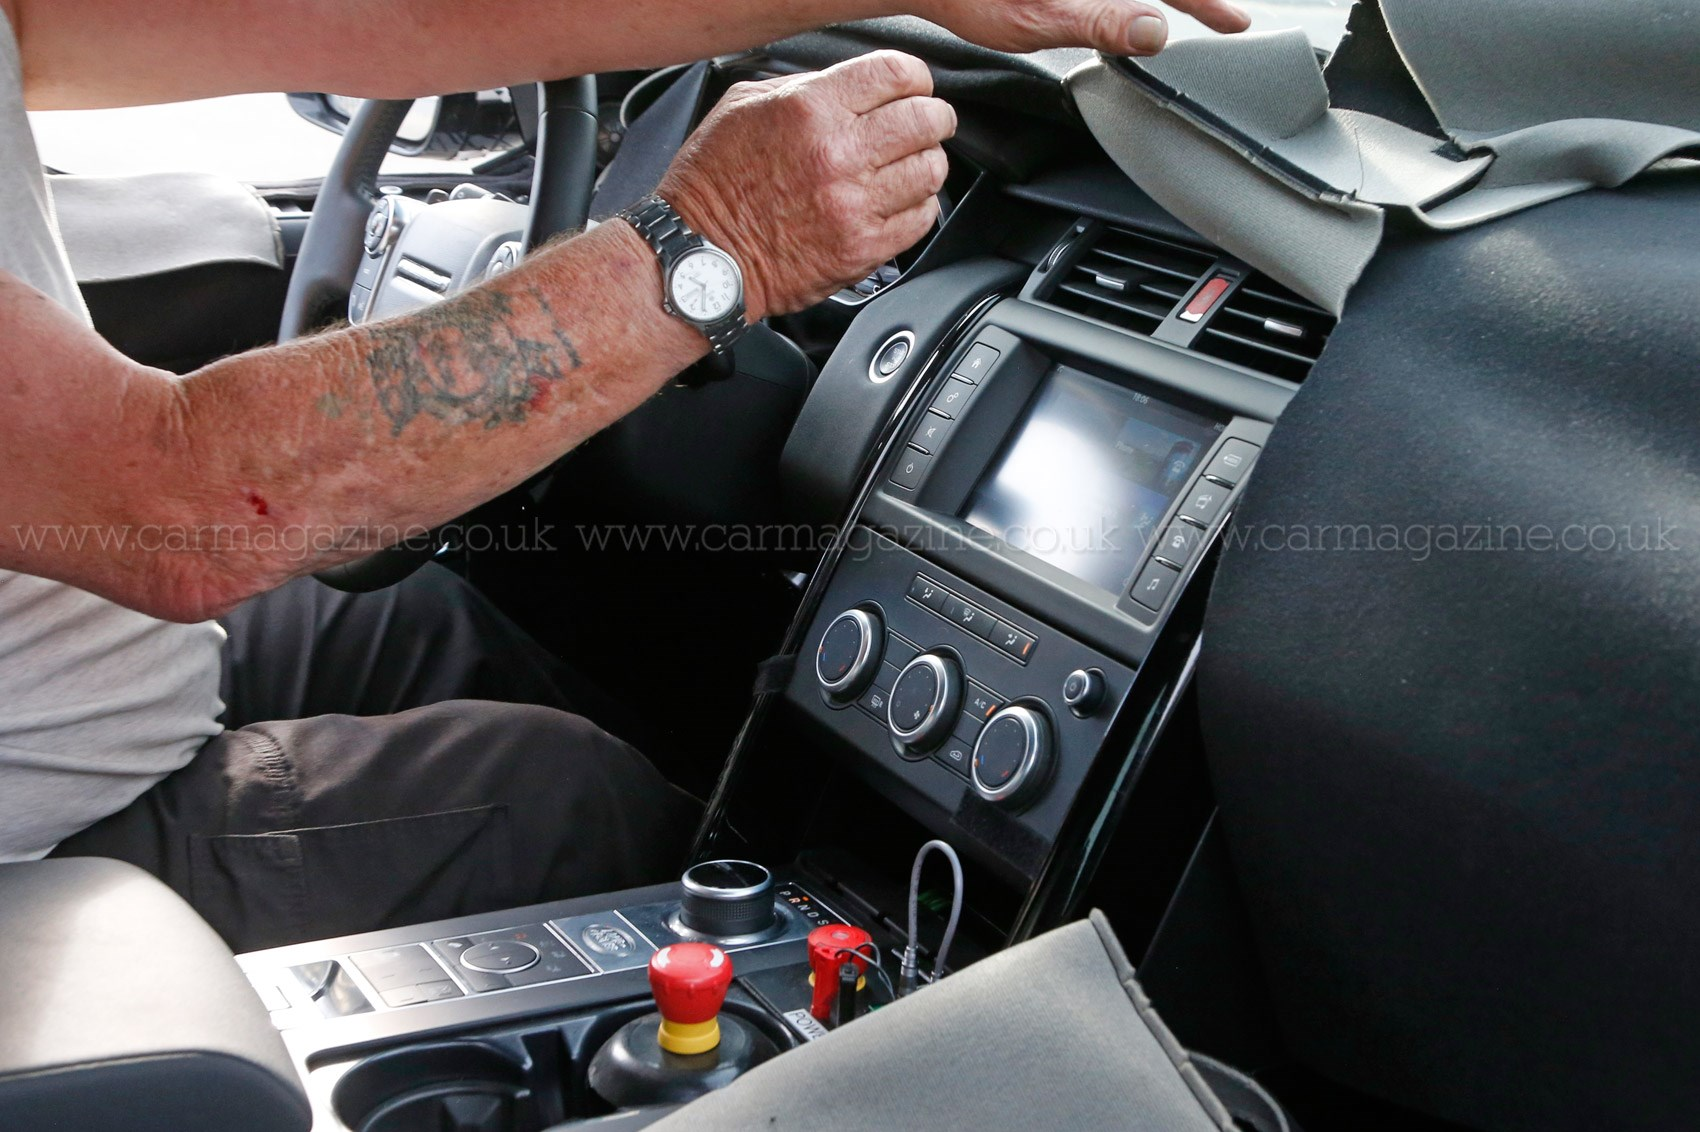 A new discovery land rover 39 s 2016 disco spied plus info - Land rover discovery interior dimensions ...